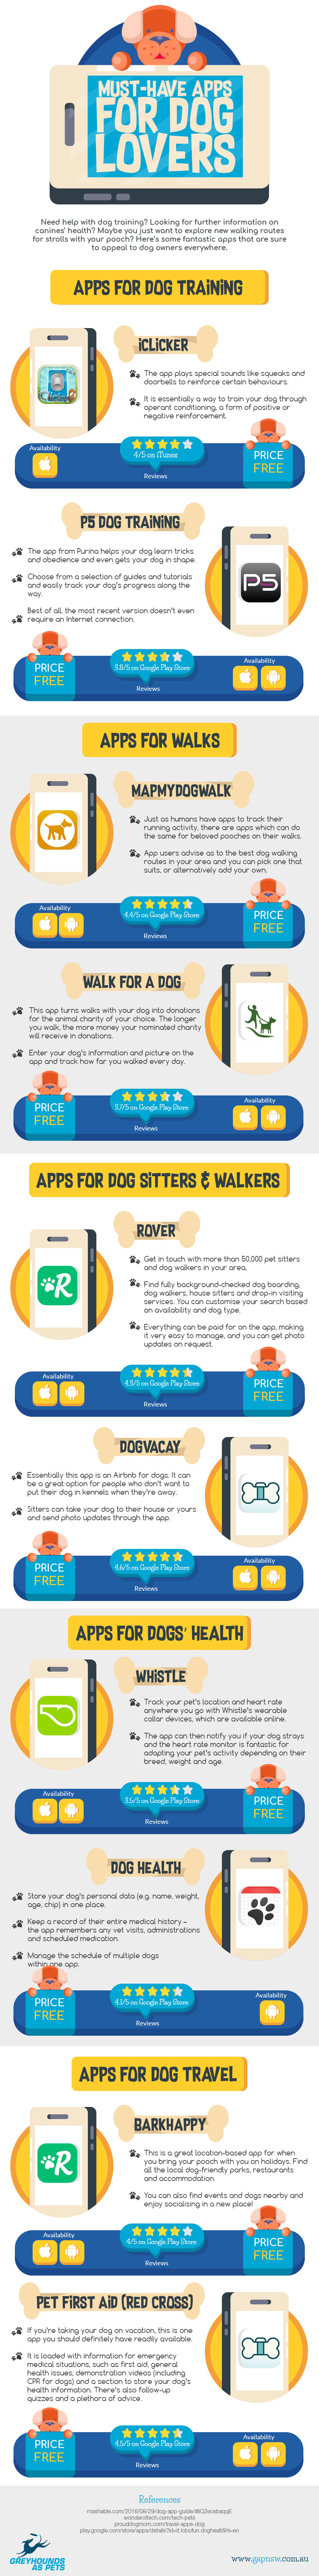 must-have-apps-for-dog-lovers-inner